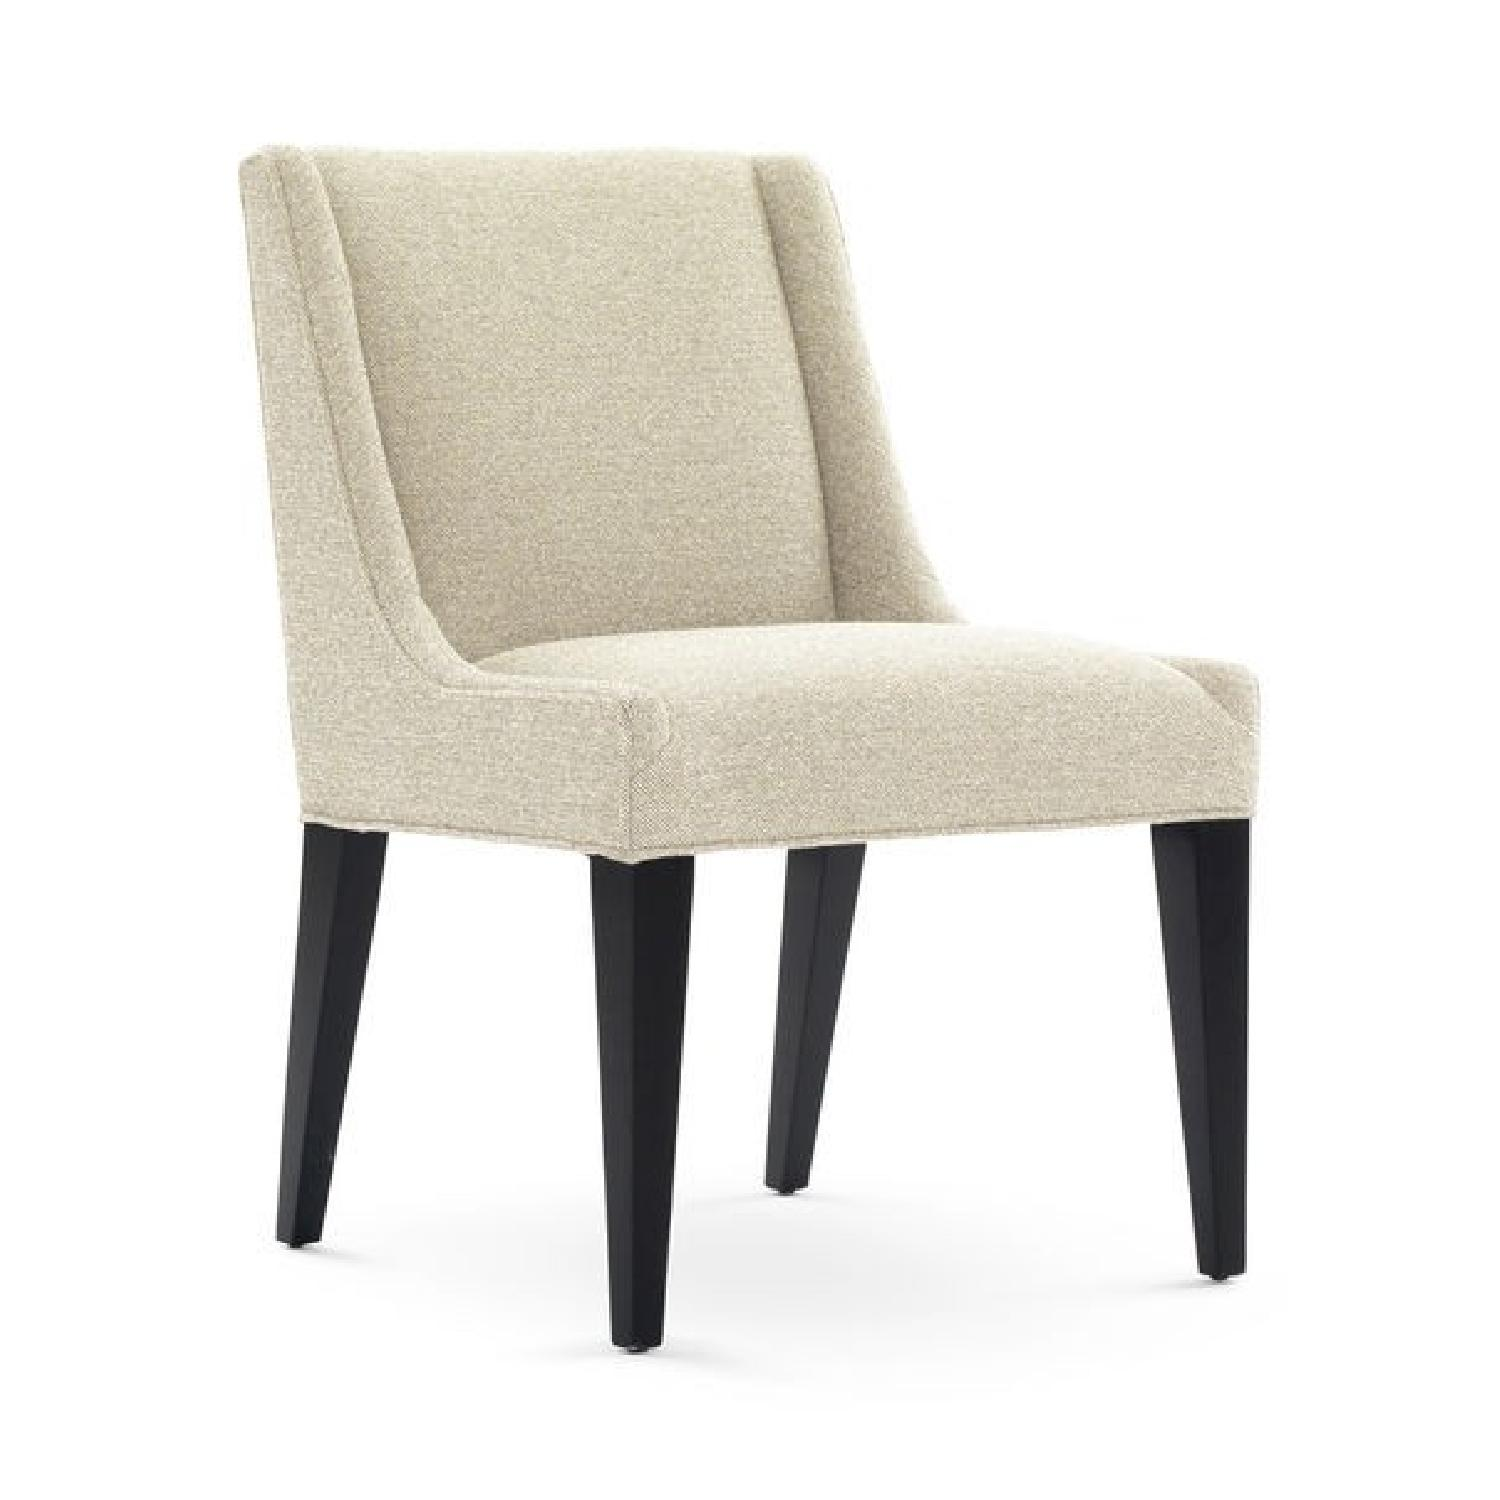 Mitchell Gold + Bob Williams Crosby Side Chair in Natural